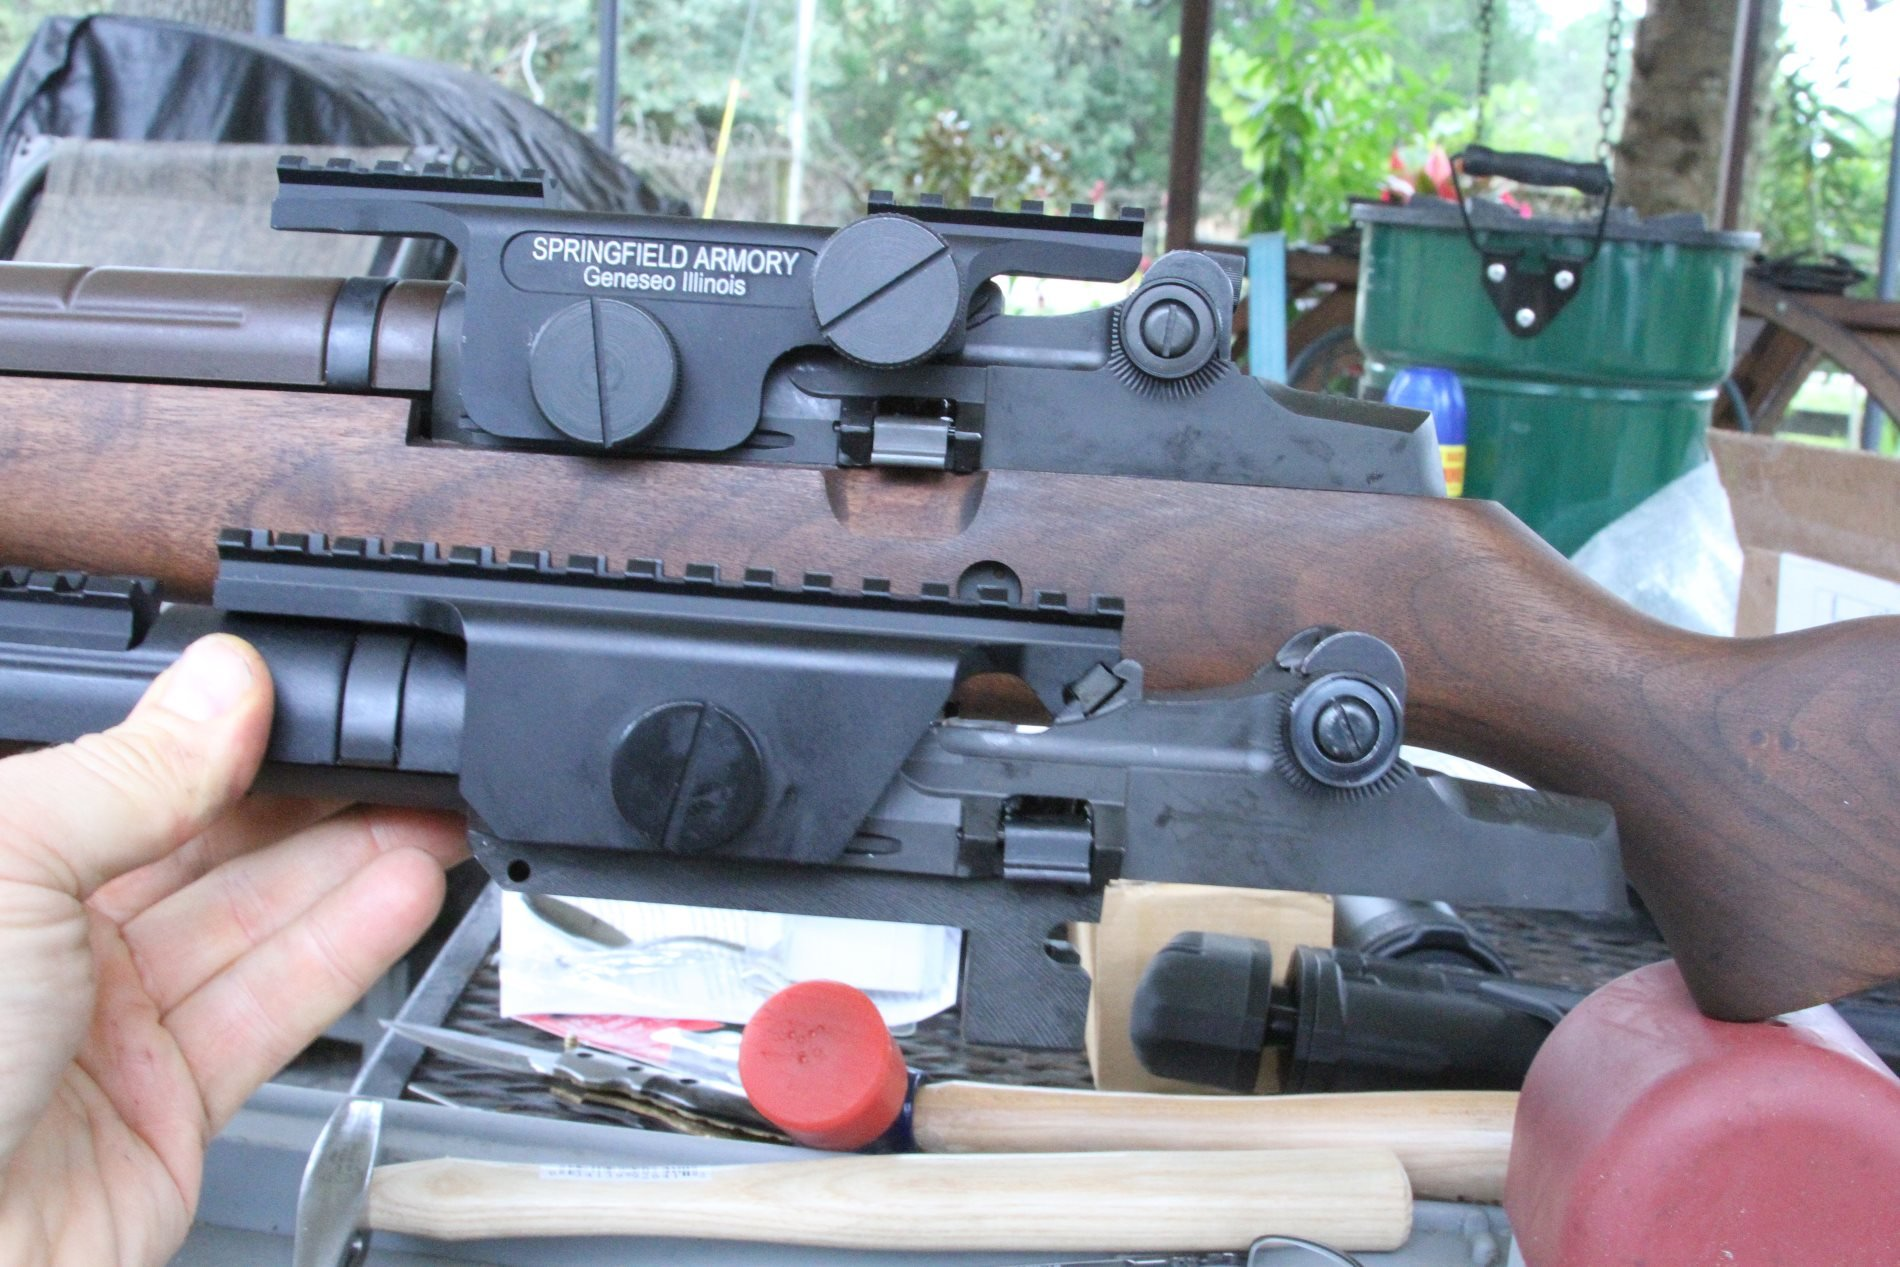 M1A Sniper - On the Cheap, or All the Way? - GunsAmerica Digest